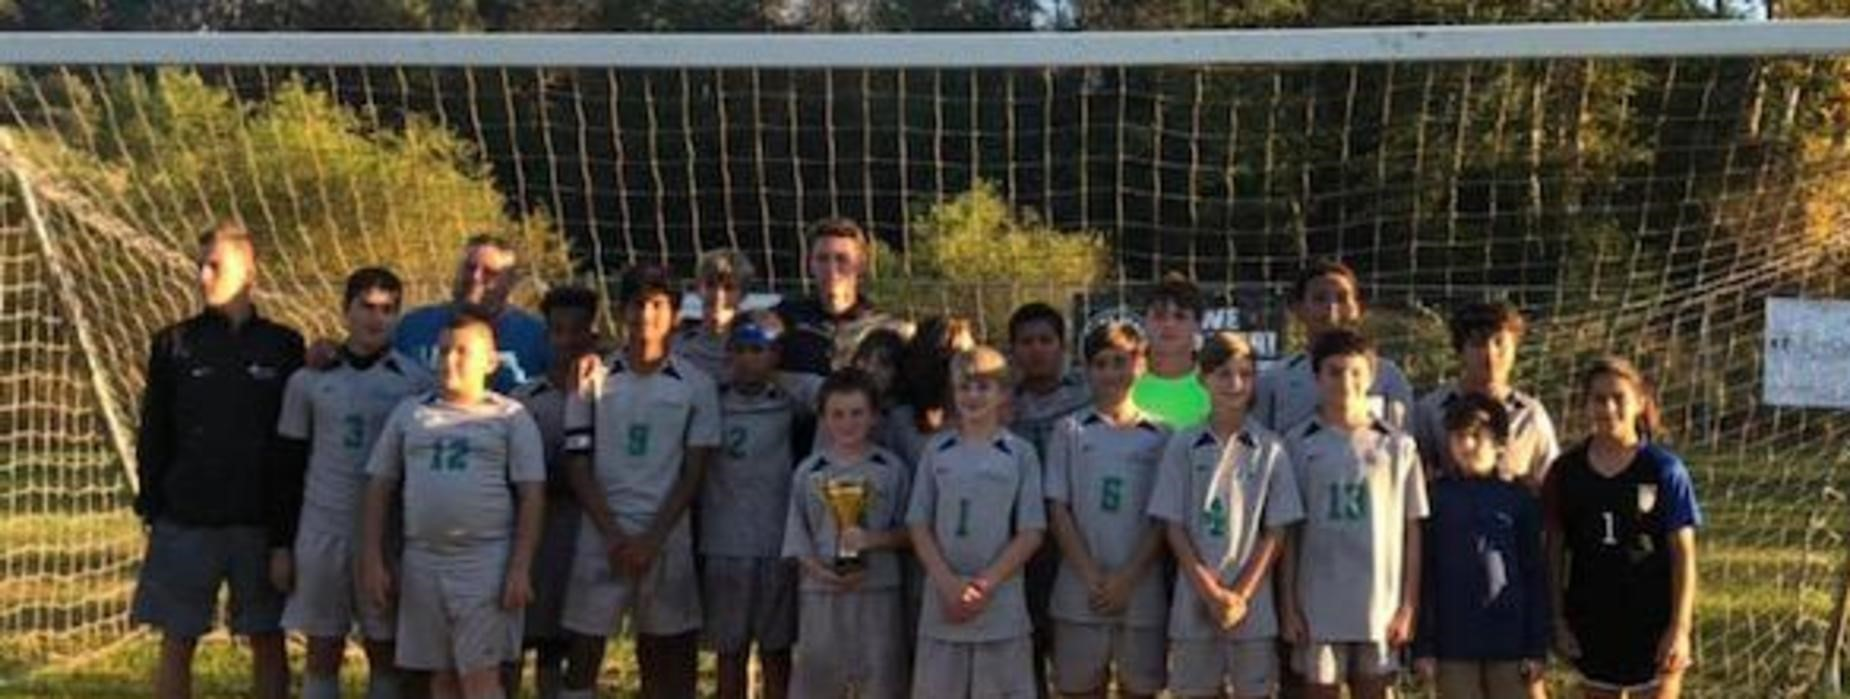 Middle School 2019 Boys Soccer Champions